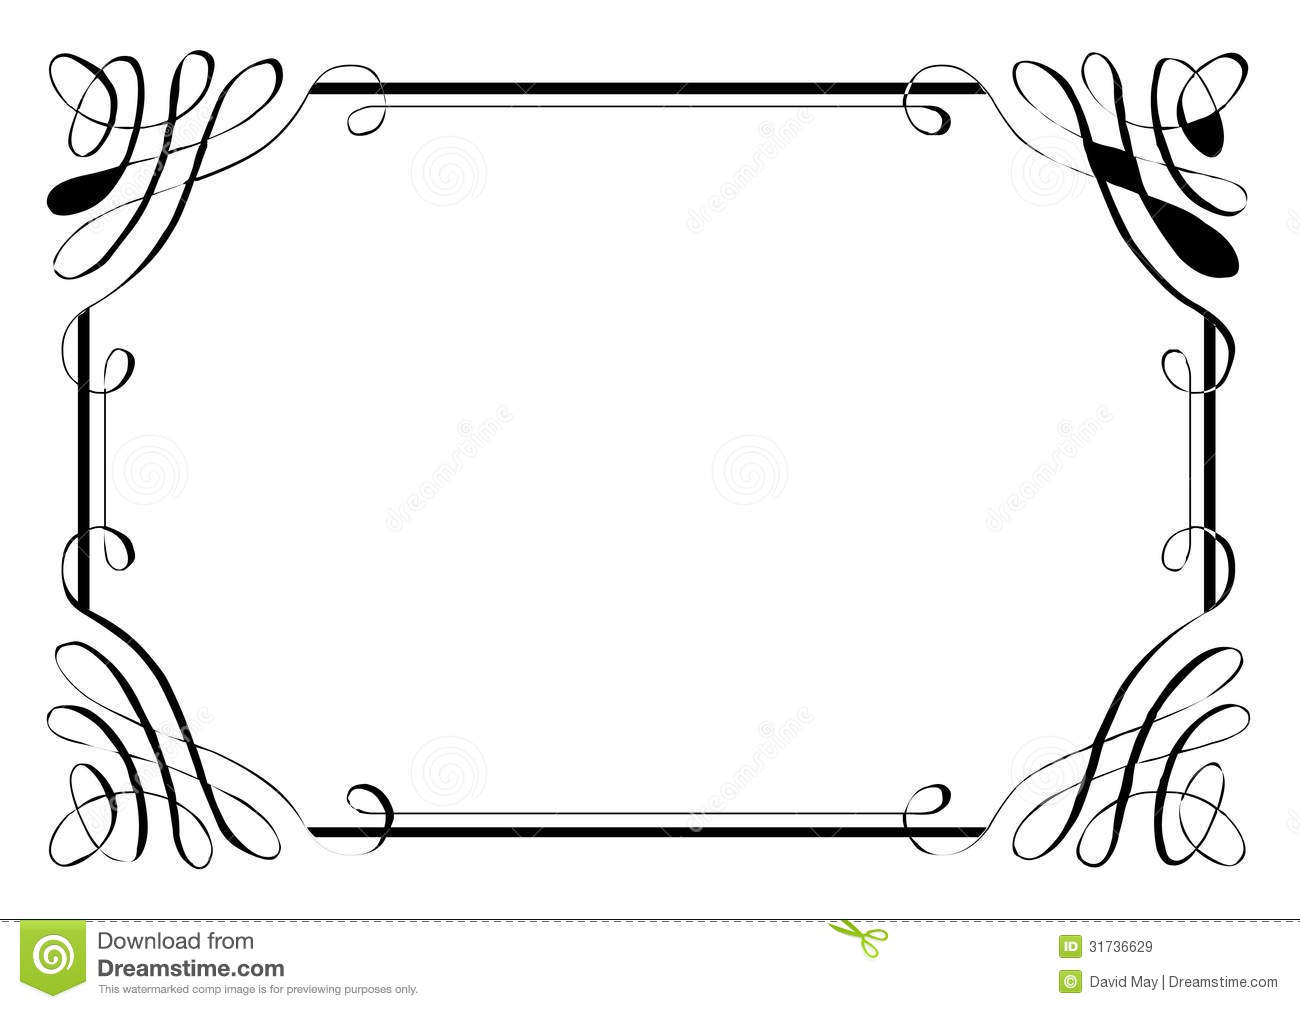 1300x1009 Chinese Clipart Boarder Cute Borders, Vectors, Animated, Black And